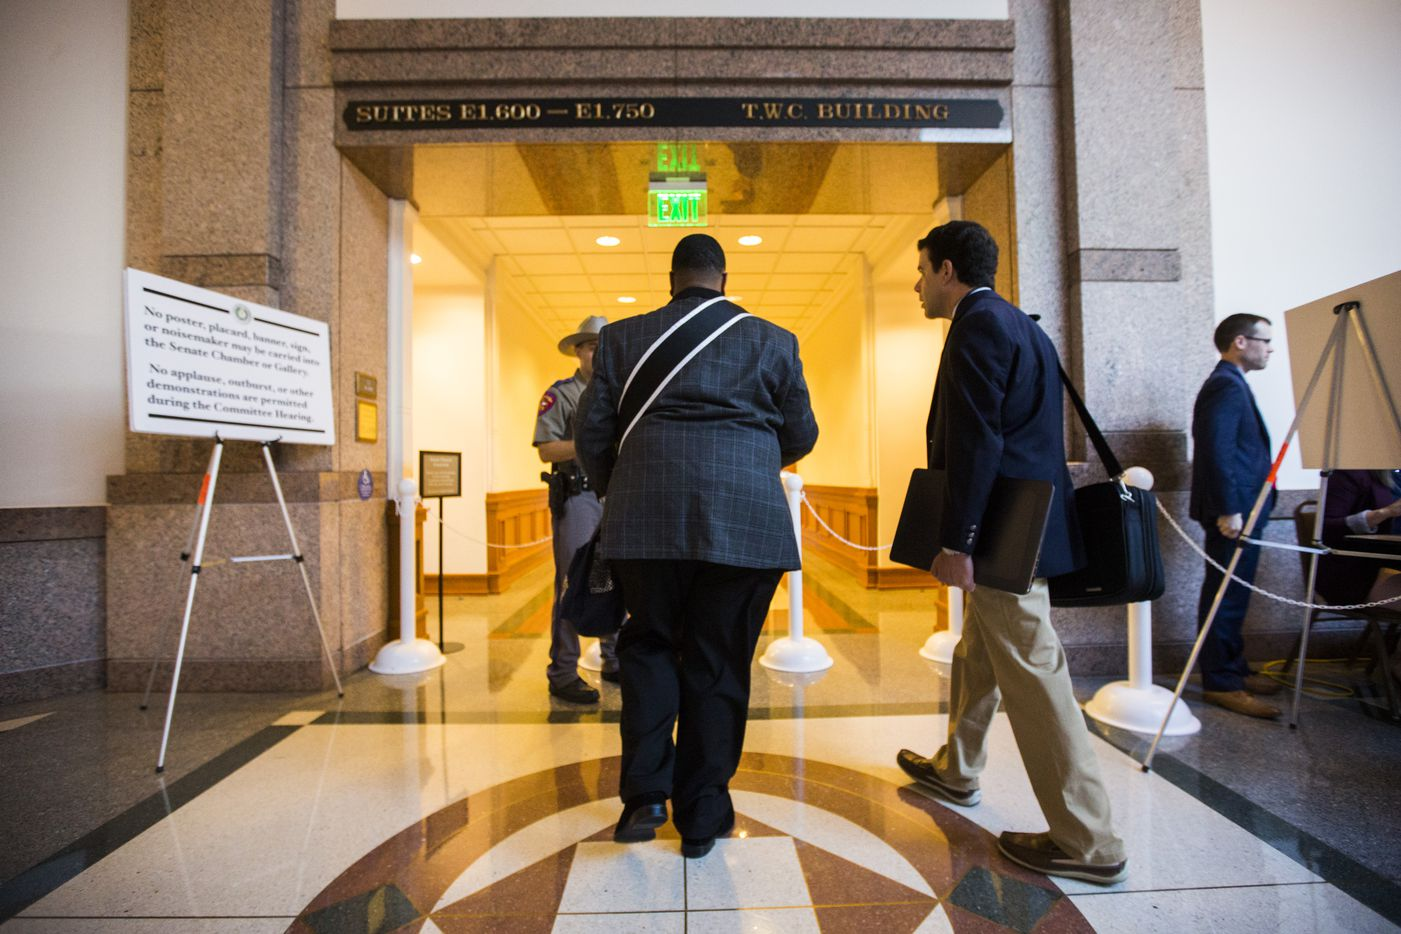 Trenton Johnson enters a hearing room to voice his opposition to the bathroom bill at a Senate State Affairs Committee public hearing on the fourth day of a special legislative session on Friday, July 21, 2017 at the Texas state capitol in Austin, Texas.